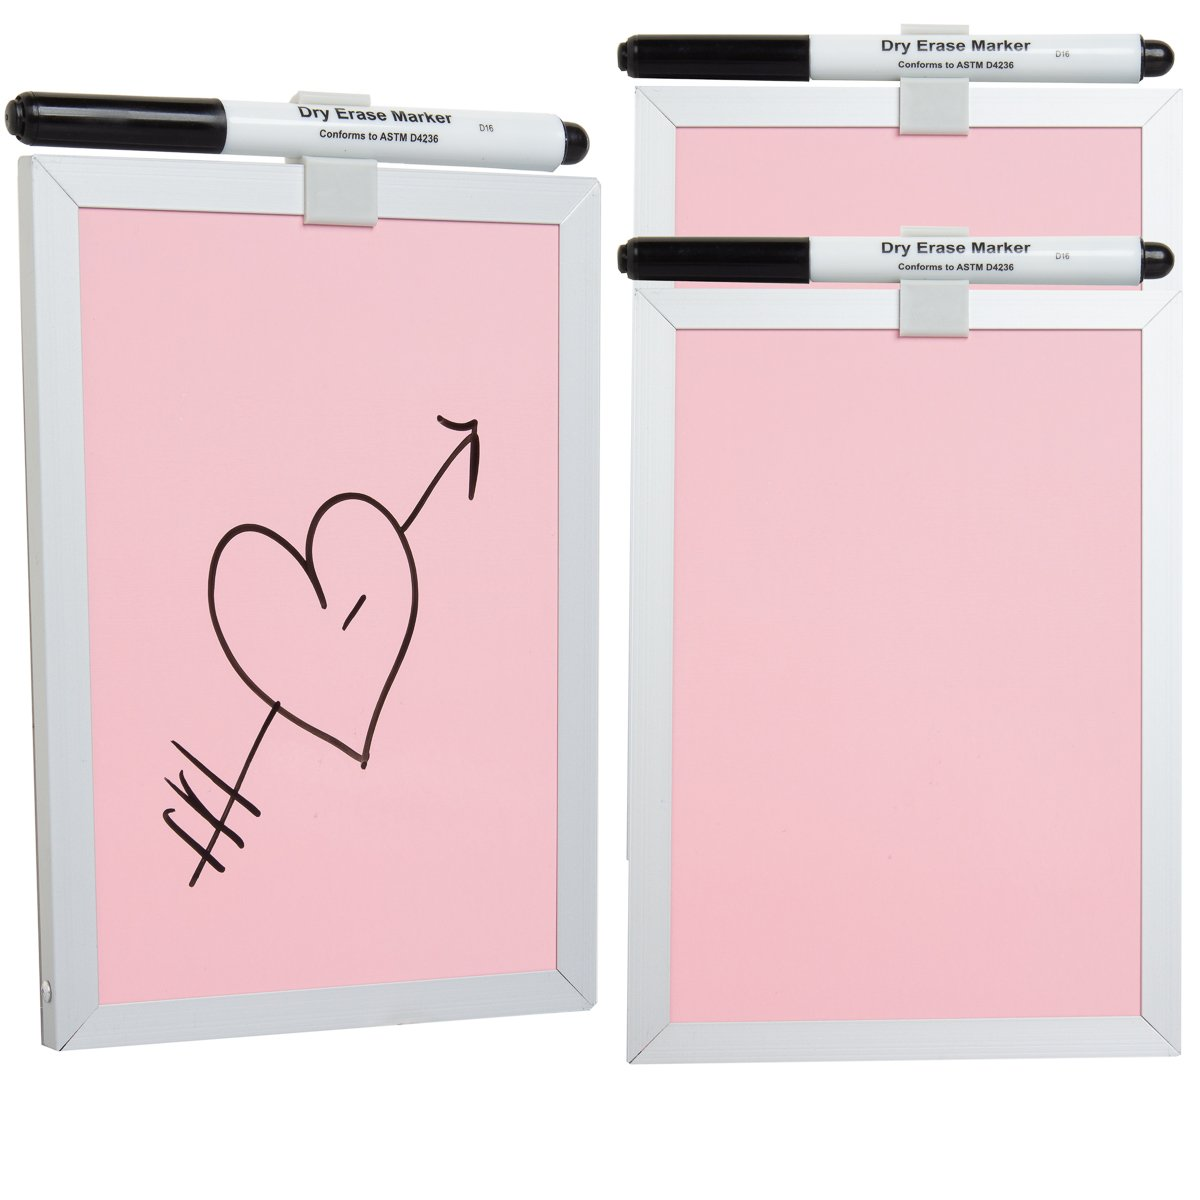 Foray (3 Pack) 5x7 Magnetic Dry Erase Board Small + Dry Erase Markers White Board for School Home Office